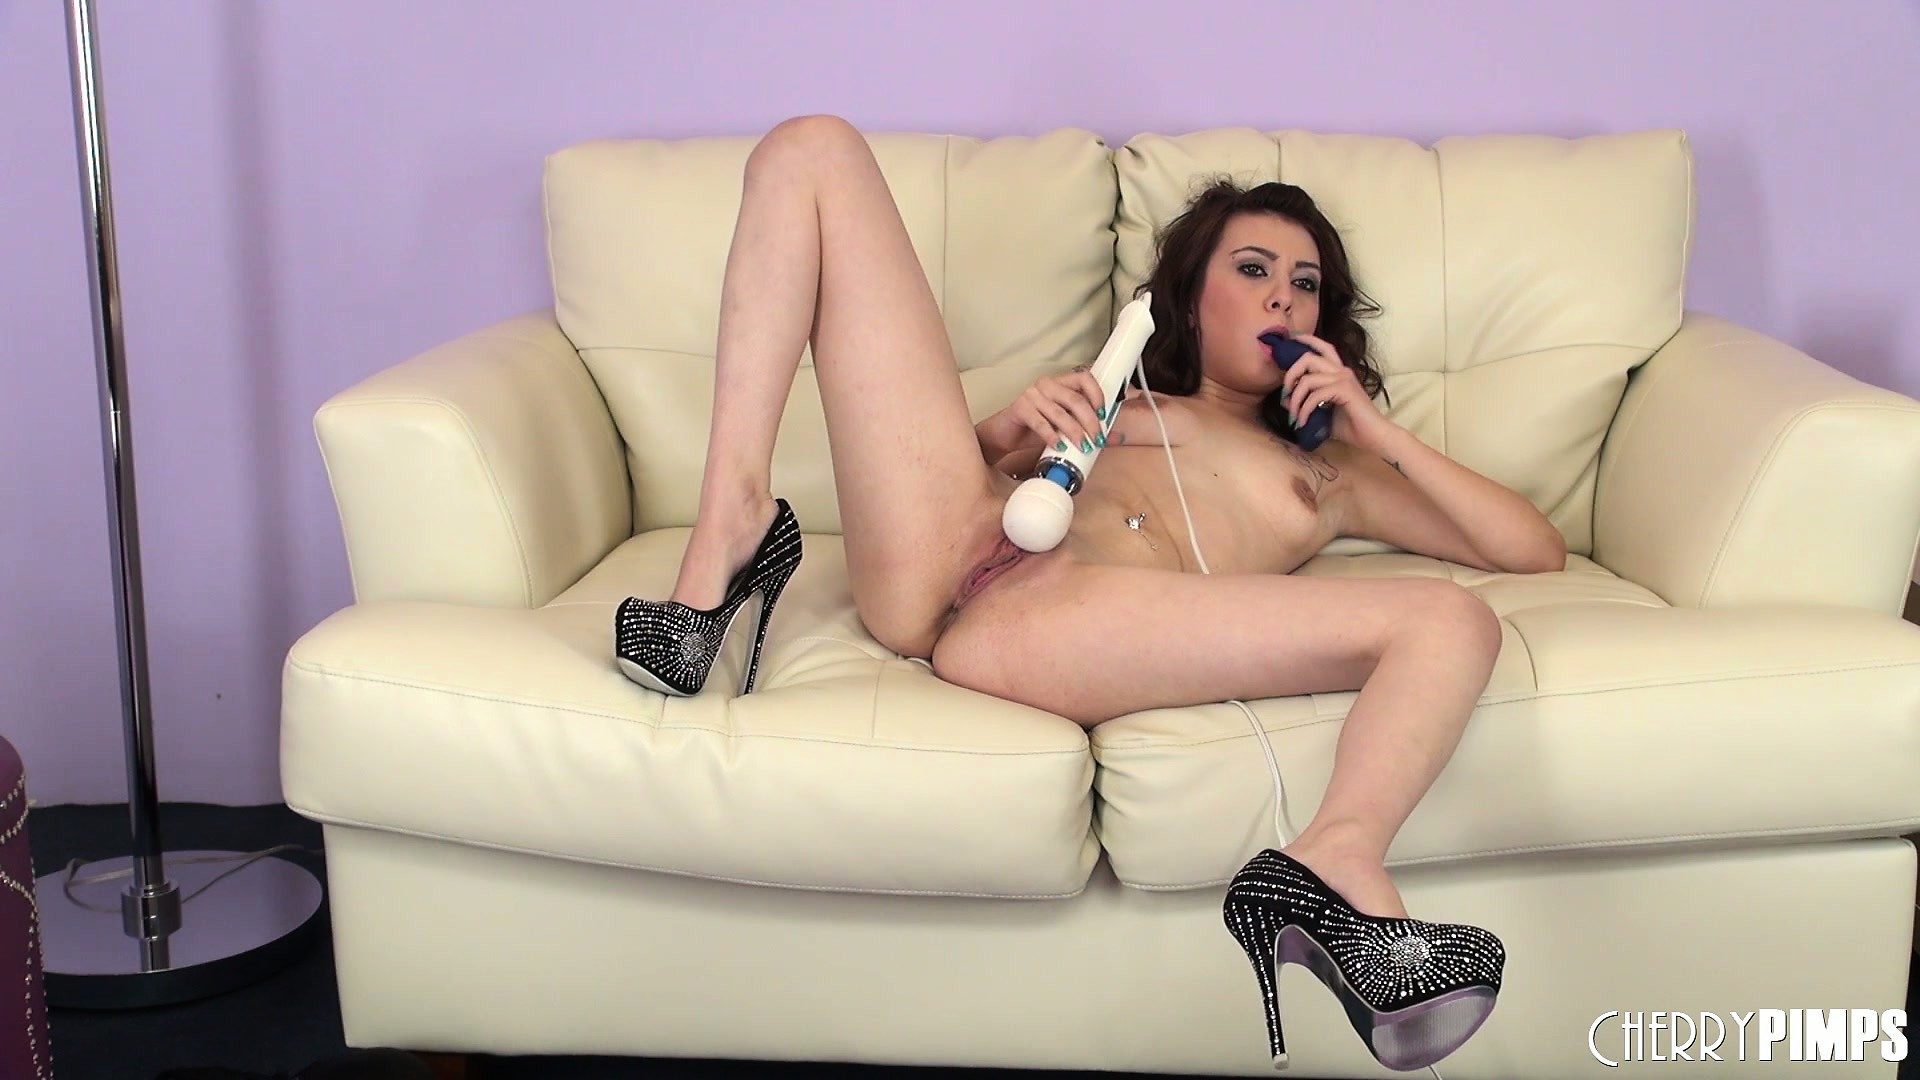 Porn Tube of Kat Dior Lets Her Curly Hair Flow Over Her Perfect Perky Tits